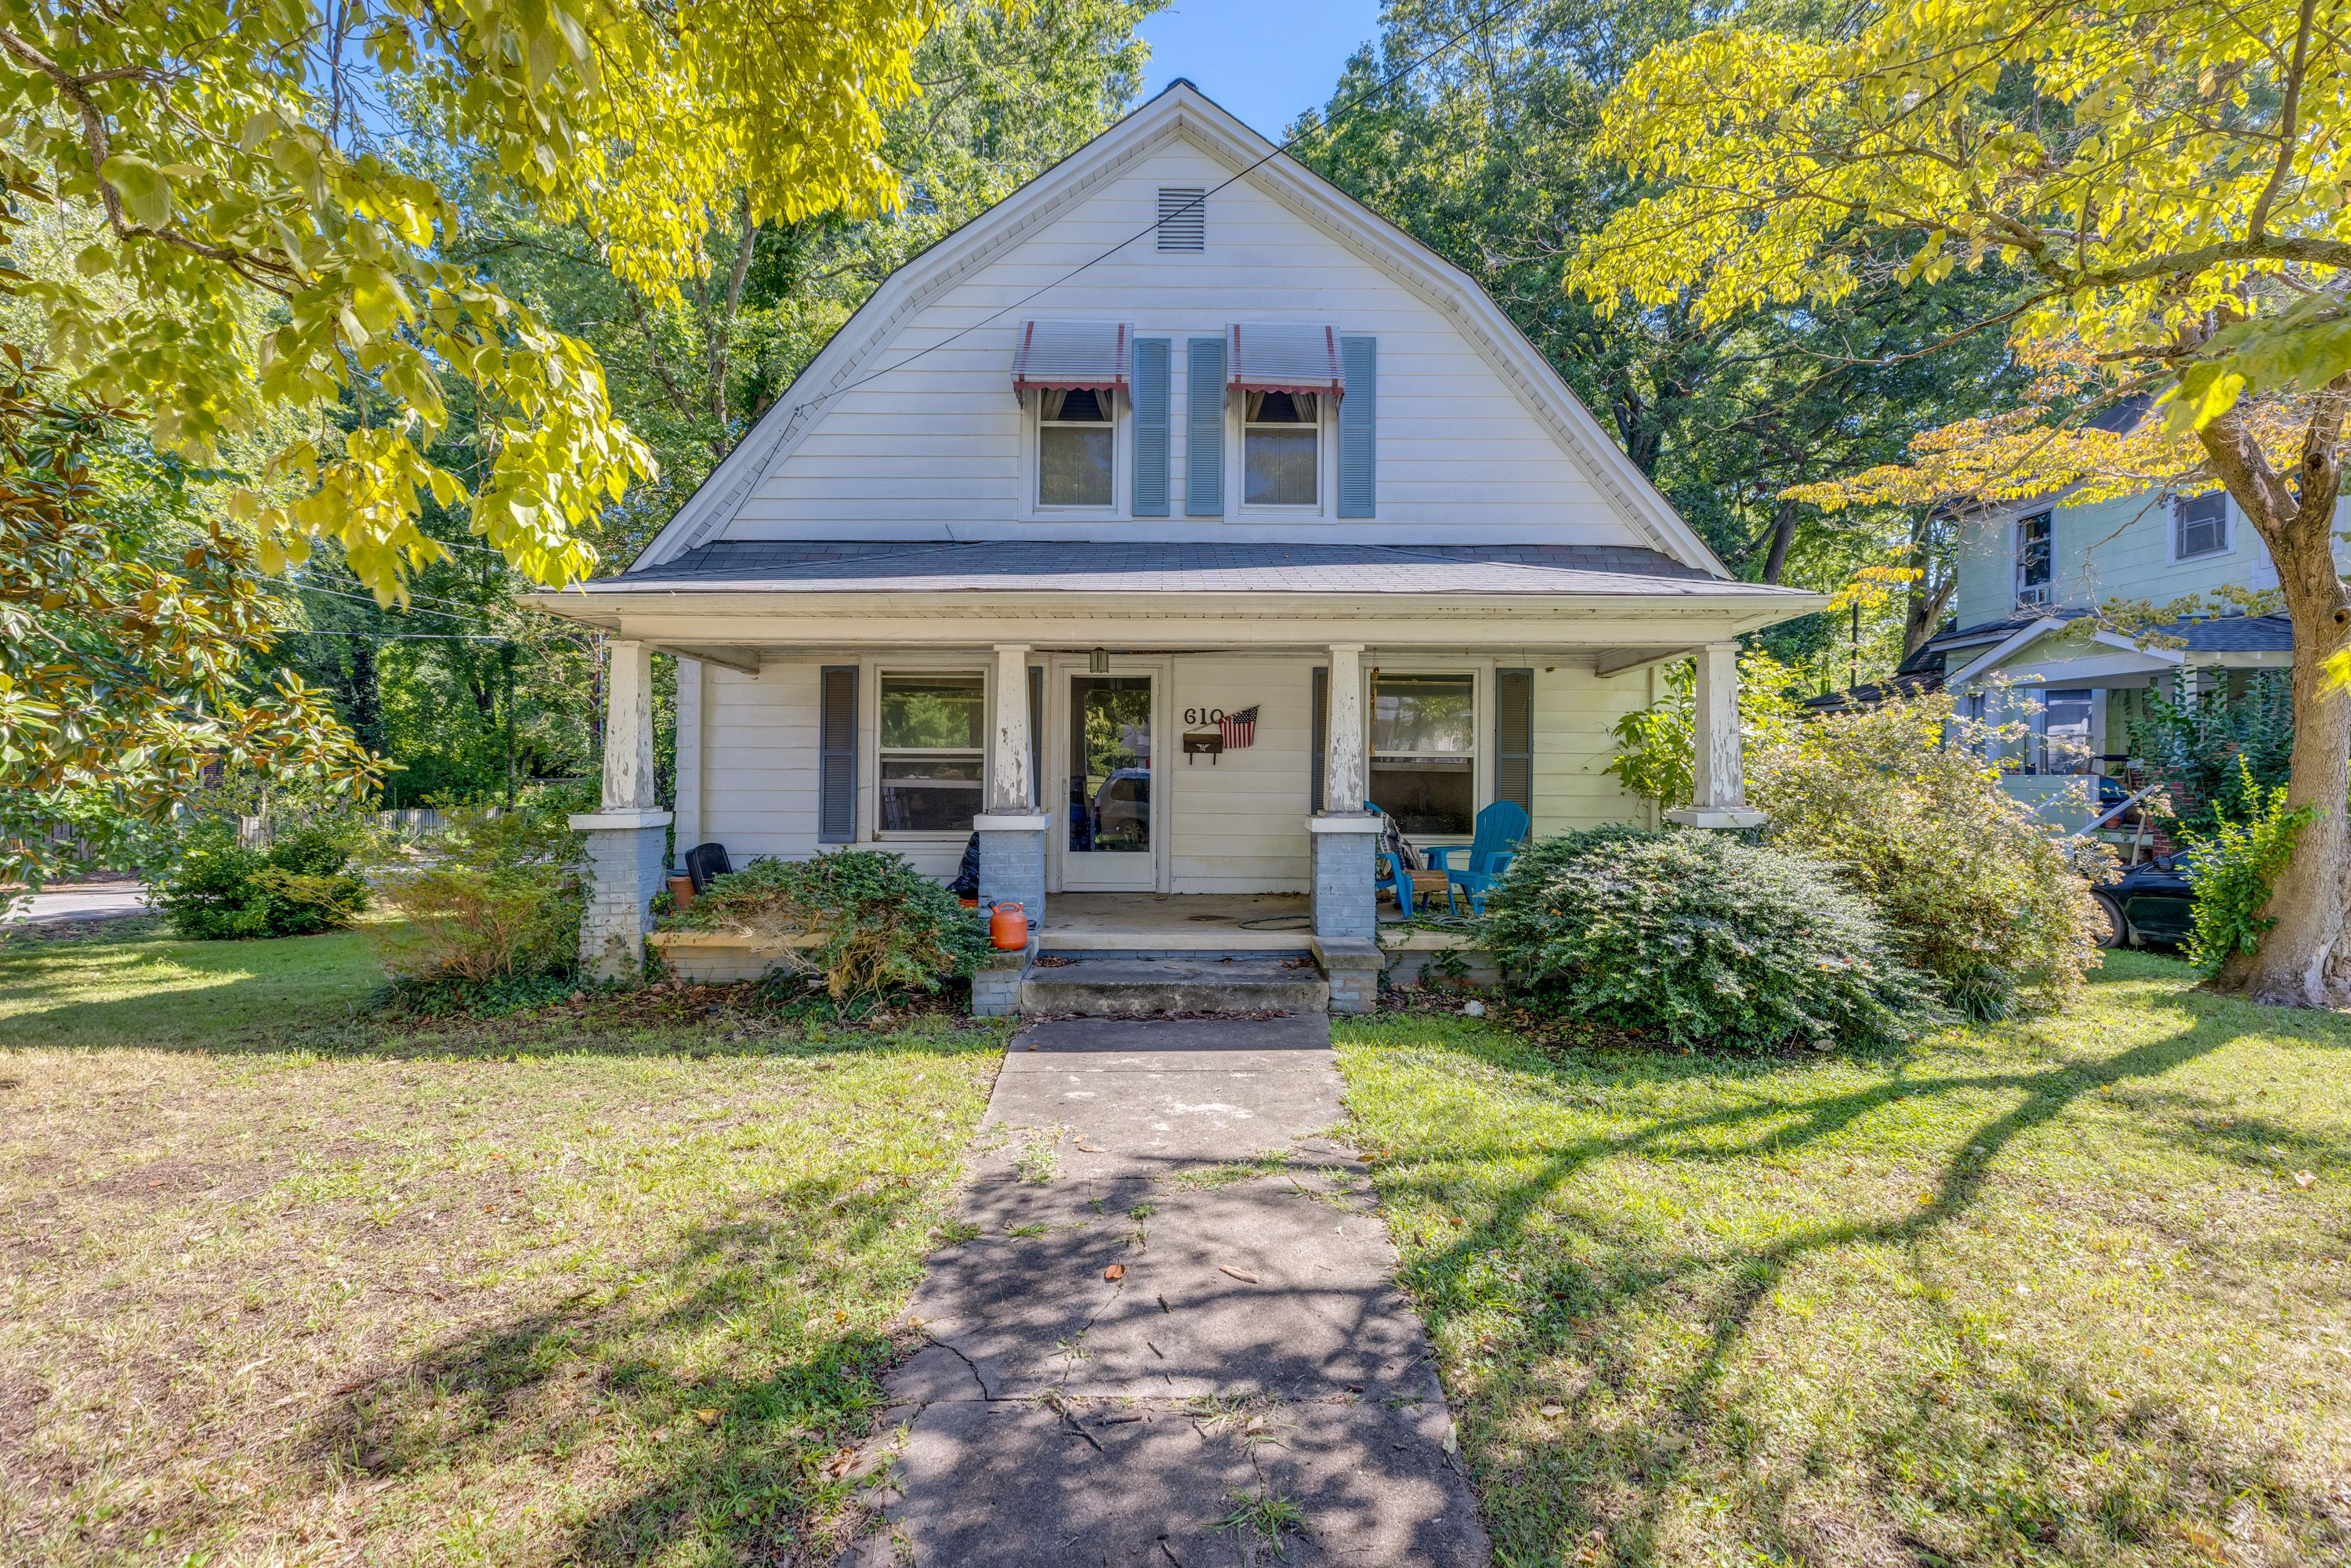 610 4th St, Spencer, NC